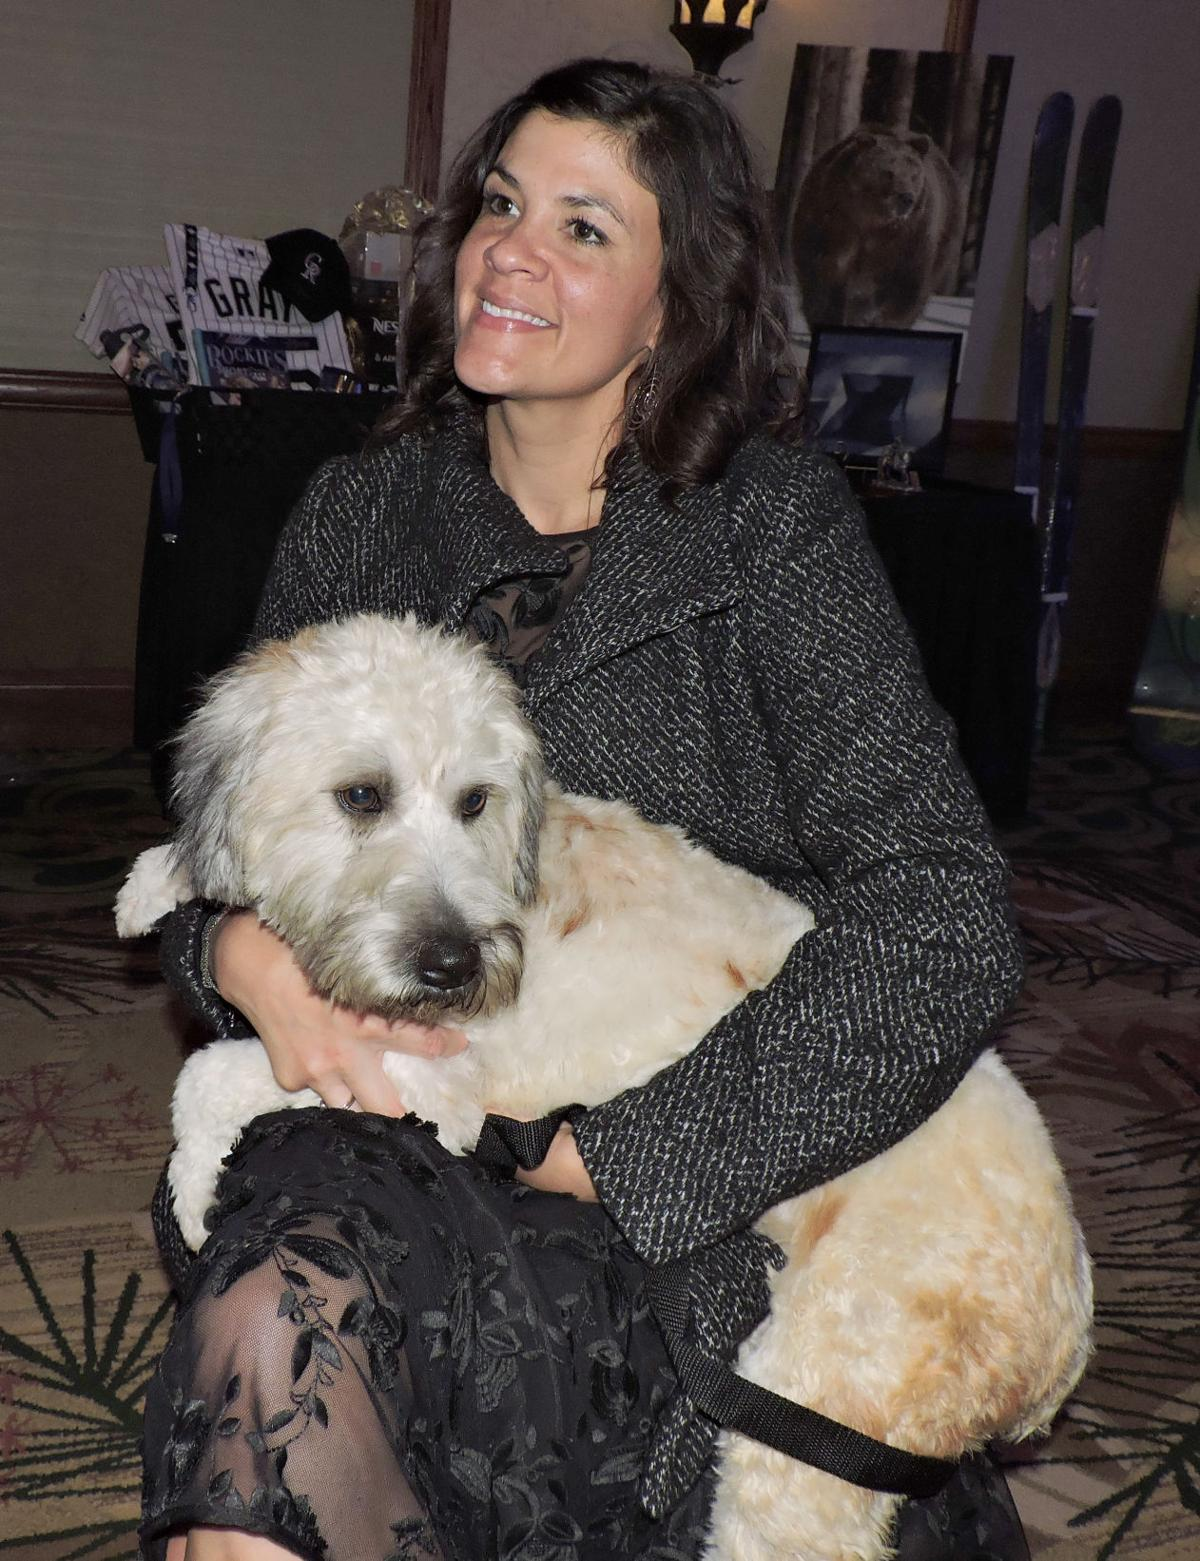 National Mill Dog Rescue volunteer Amber Sathre cuddles Fantasia, who had been rescued two weeks before the benefit gala and was a bit jumpy because she had never been outside a cage.